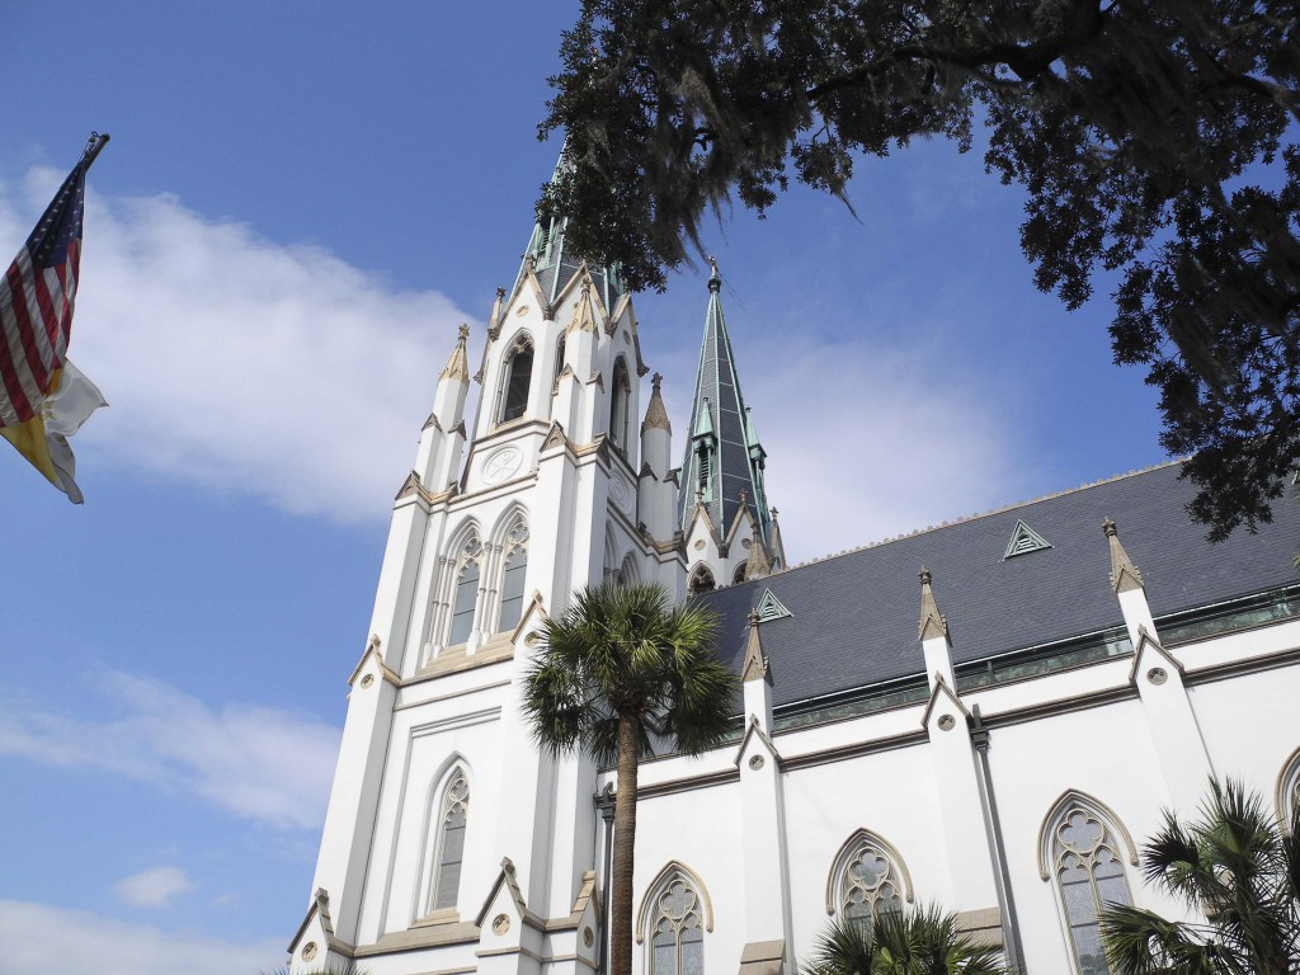 The Cathedral of St. John the Baptist, a French-Gothic church from the 1800's, is one of Savannah's most iconic landmarks. / Image: Cathedral of St. John the Baptist // Published: 3.8.19